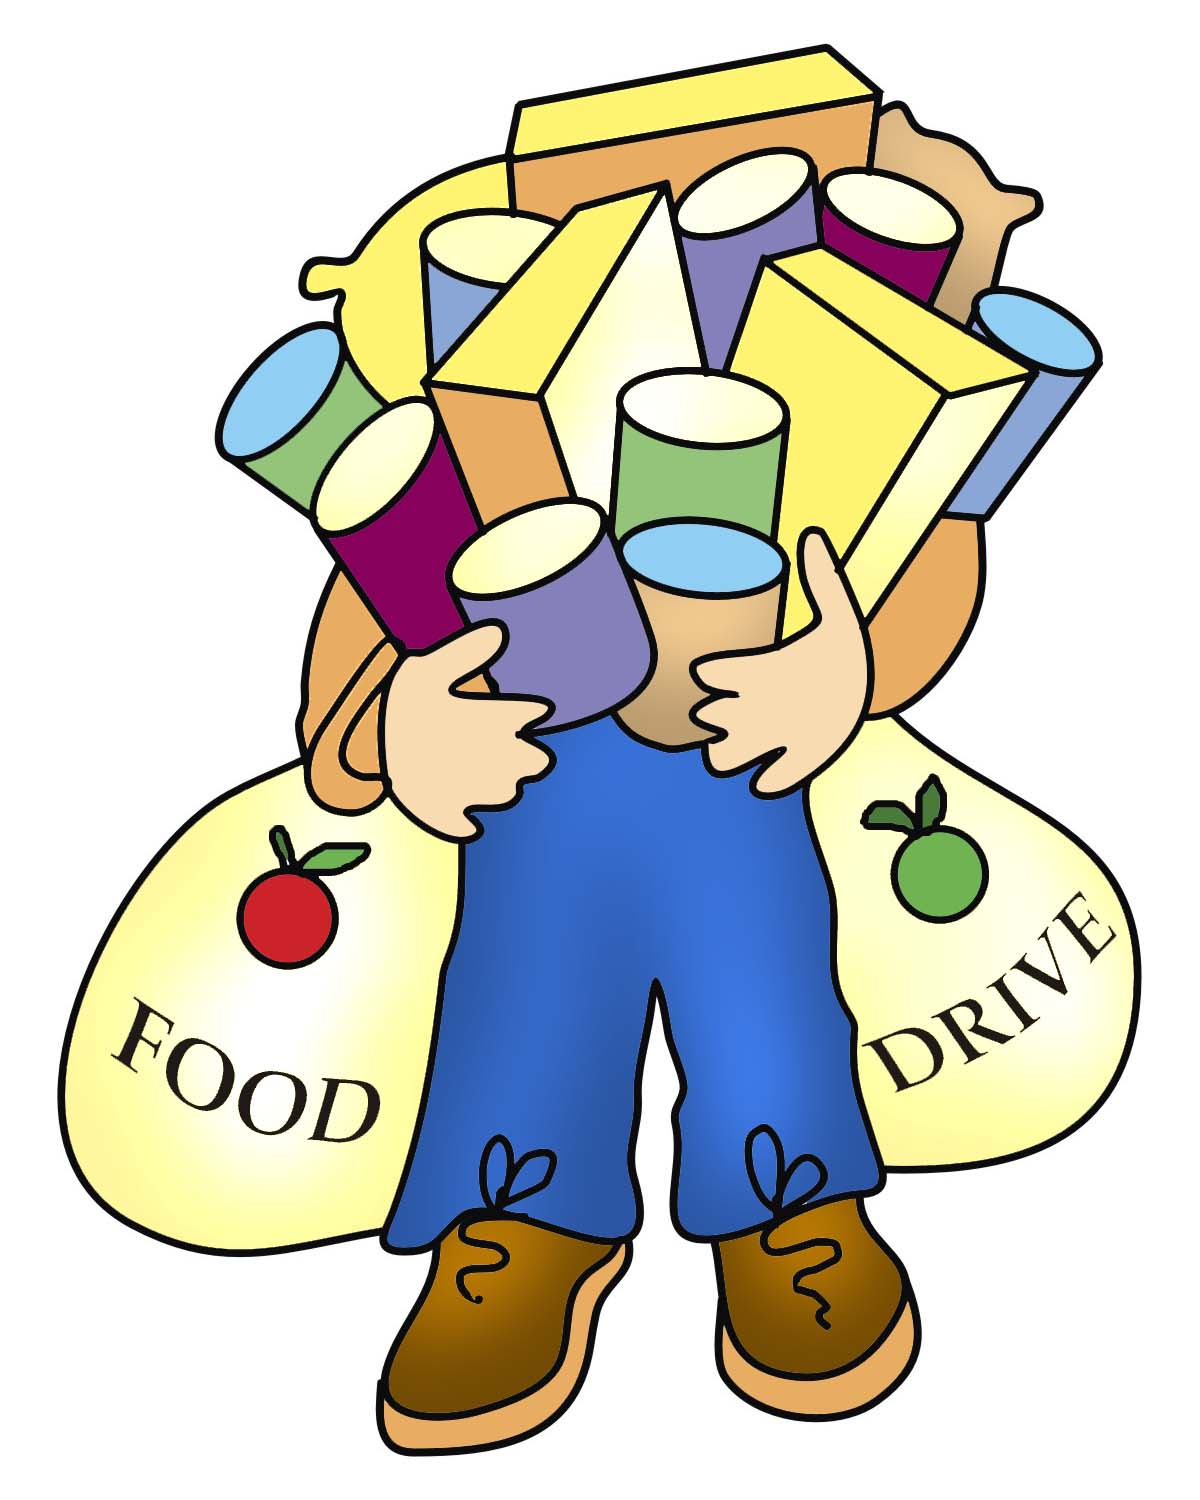 Food Bank Donations Clipart